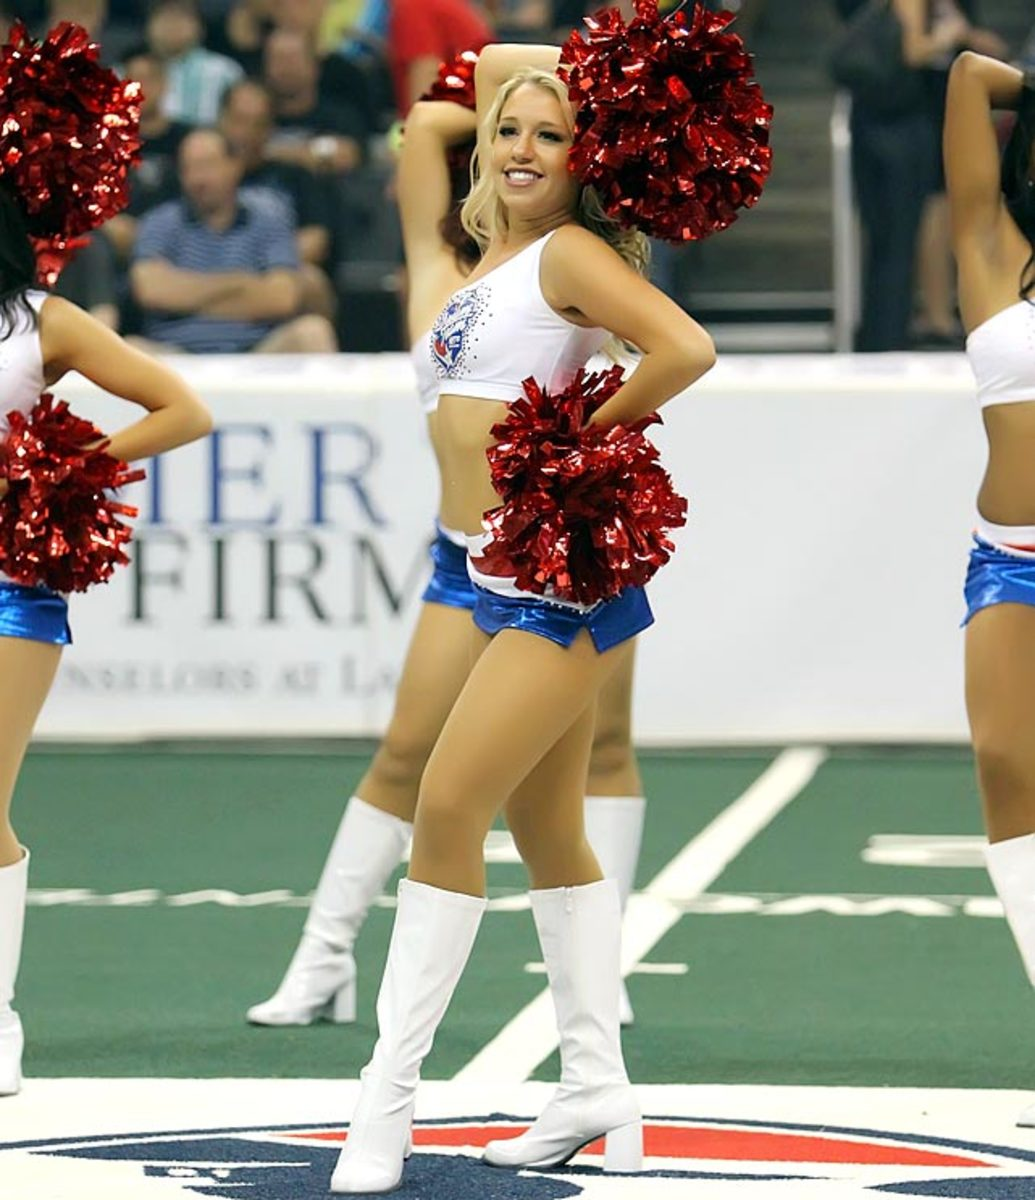 130819165407-163688-arena-bowl-by4-0316-single-image-cut.jpg